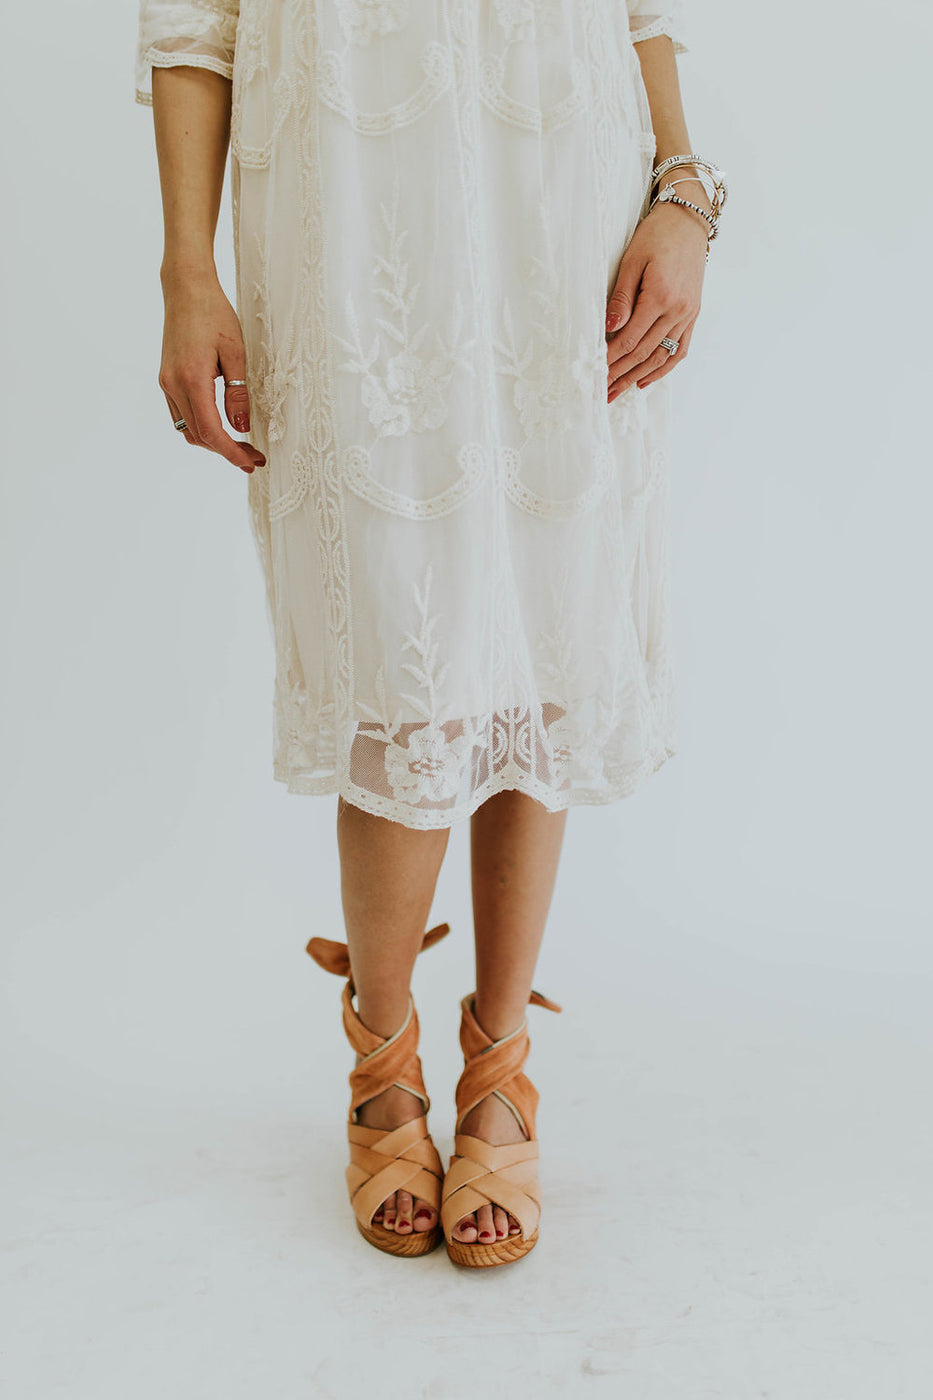 Nora Lace Dress in Ivory